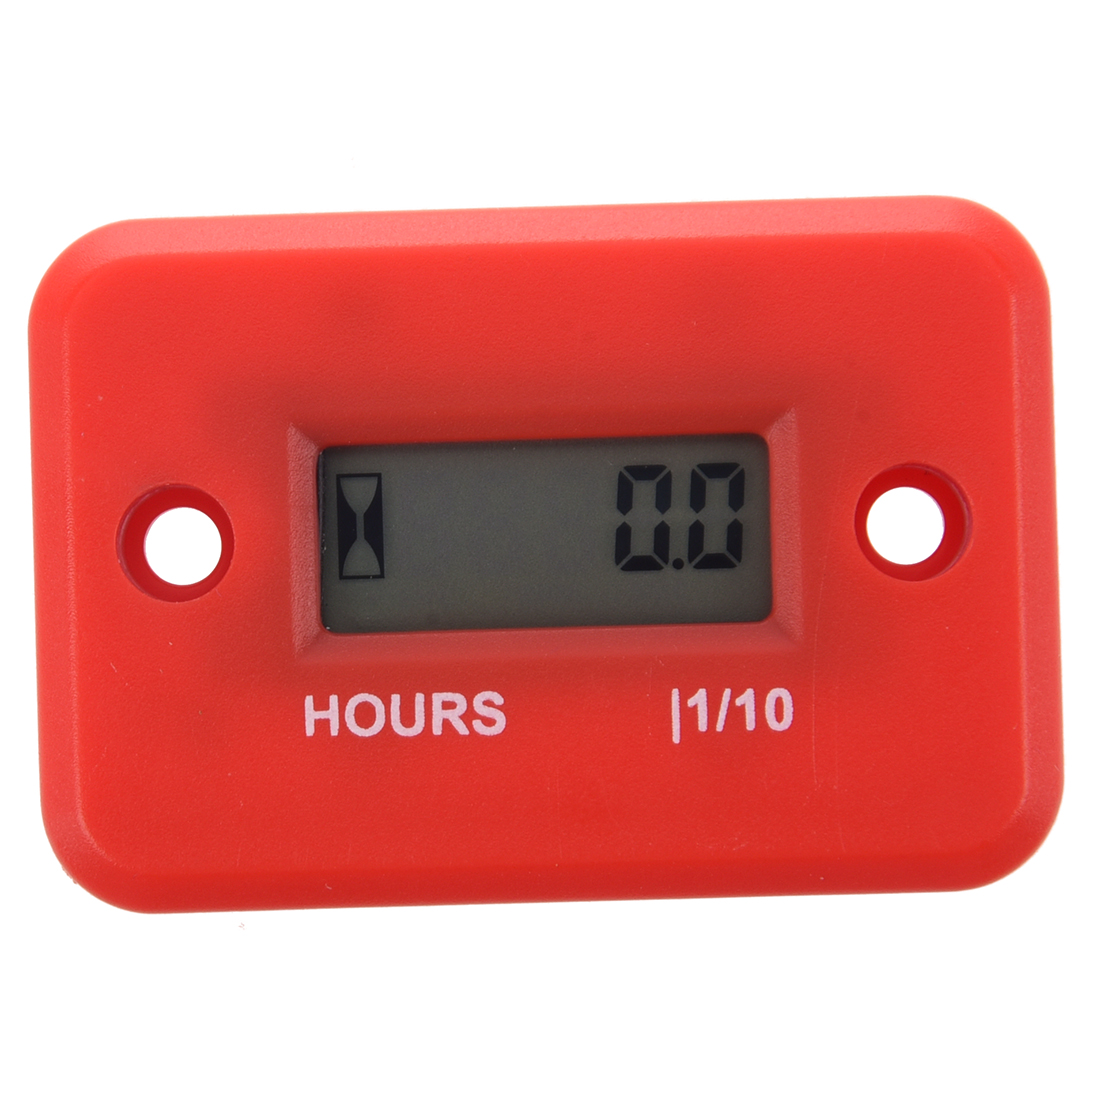 Hour Meter For Boat Yama Ski Dirt Quad Dirt bike bicycle Bike Marine ATV Motorcycle Snowmobile Small Stroke Gas Engine